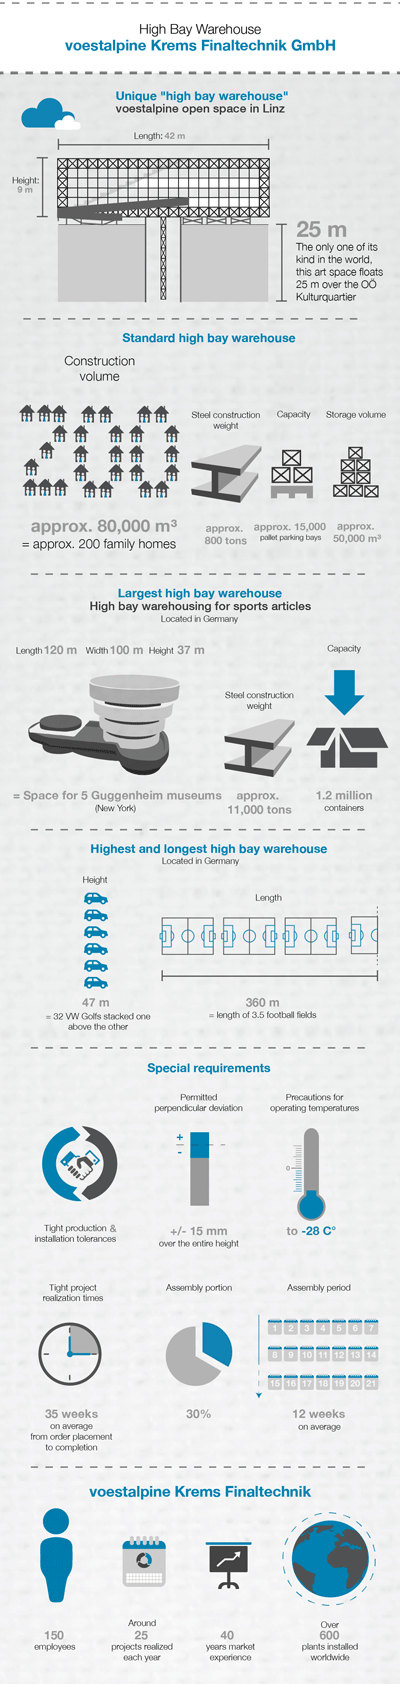 Infographic voestalpine Krems Finaltechnik GmbH high bay warehousing